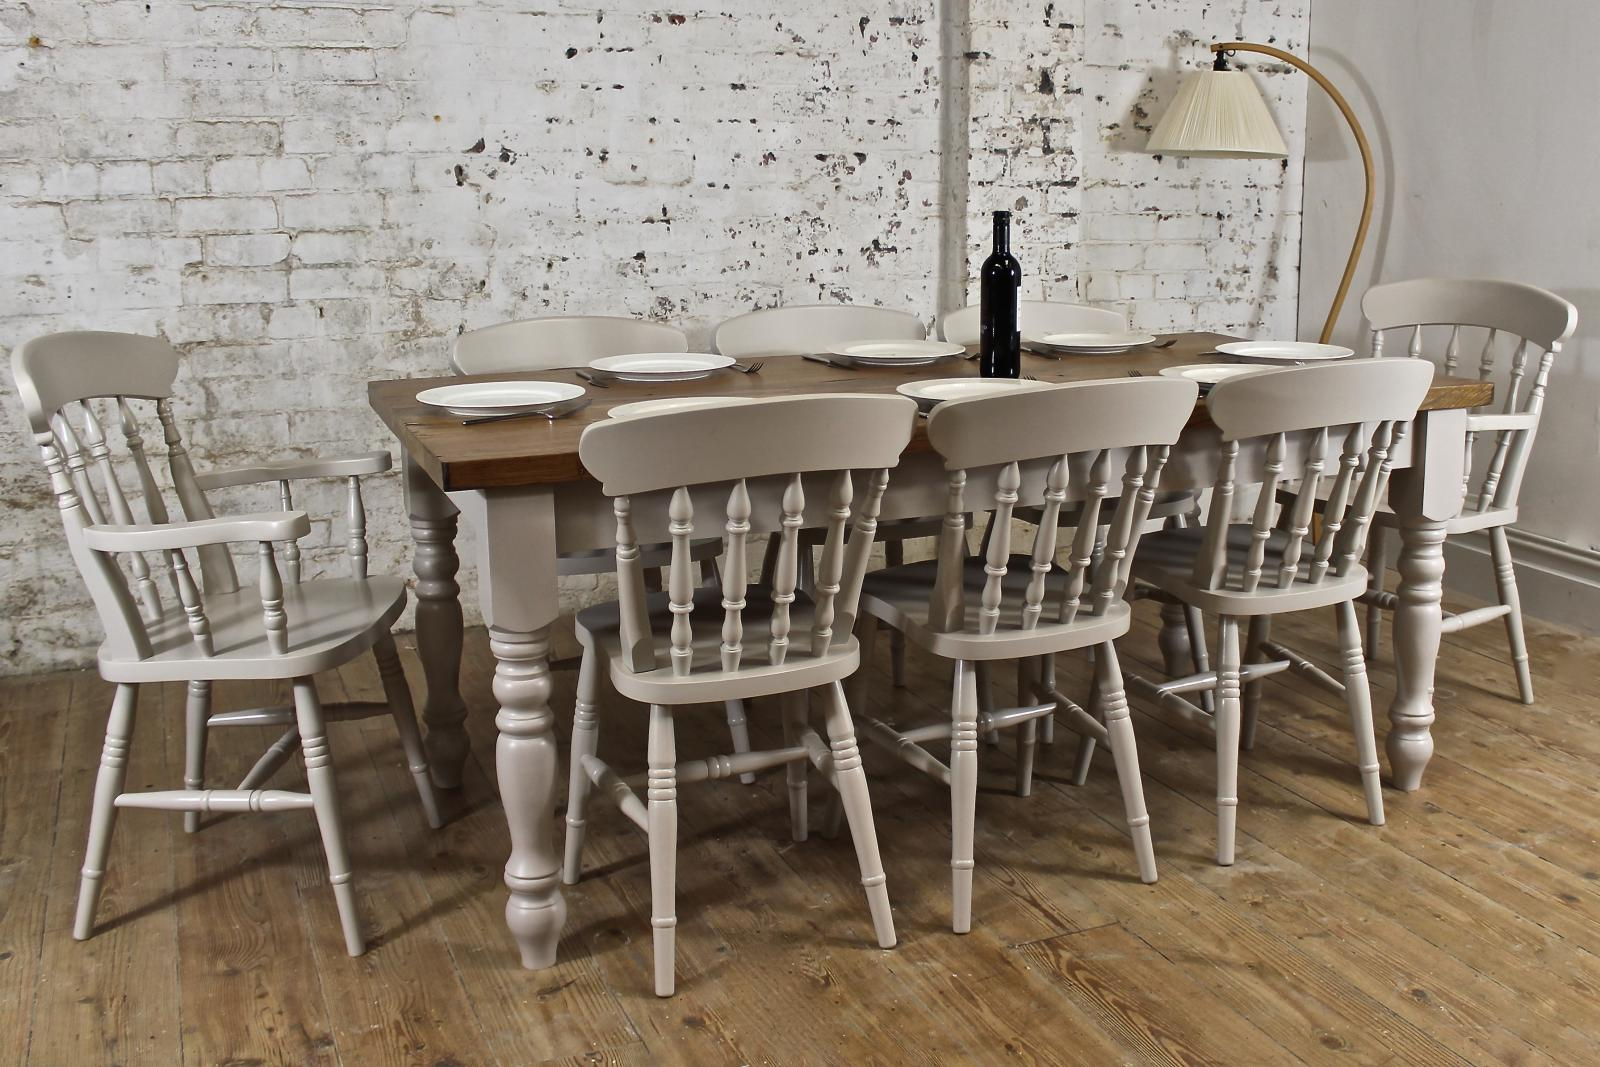 6ft solid oak dining table set chairs farmhouse painted